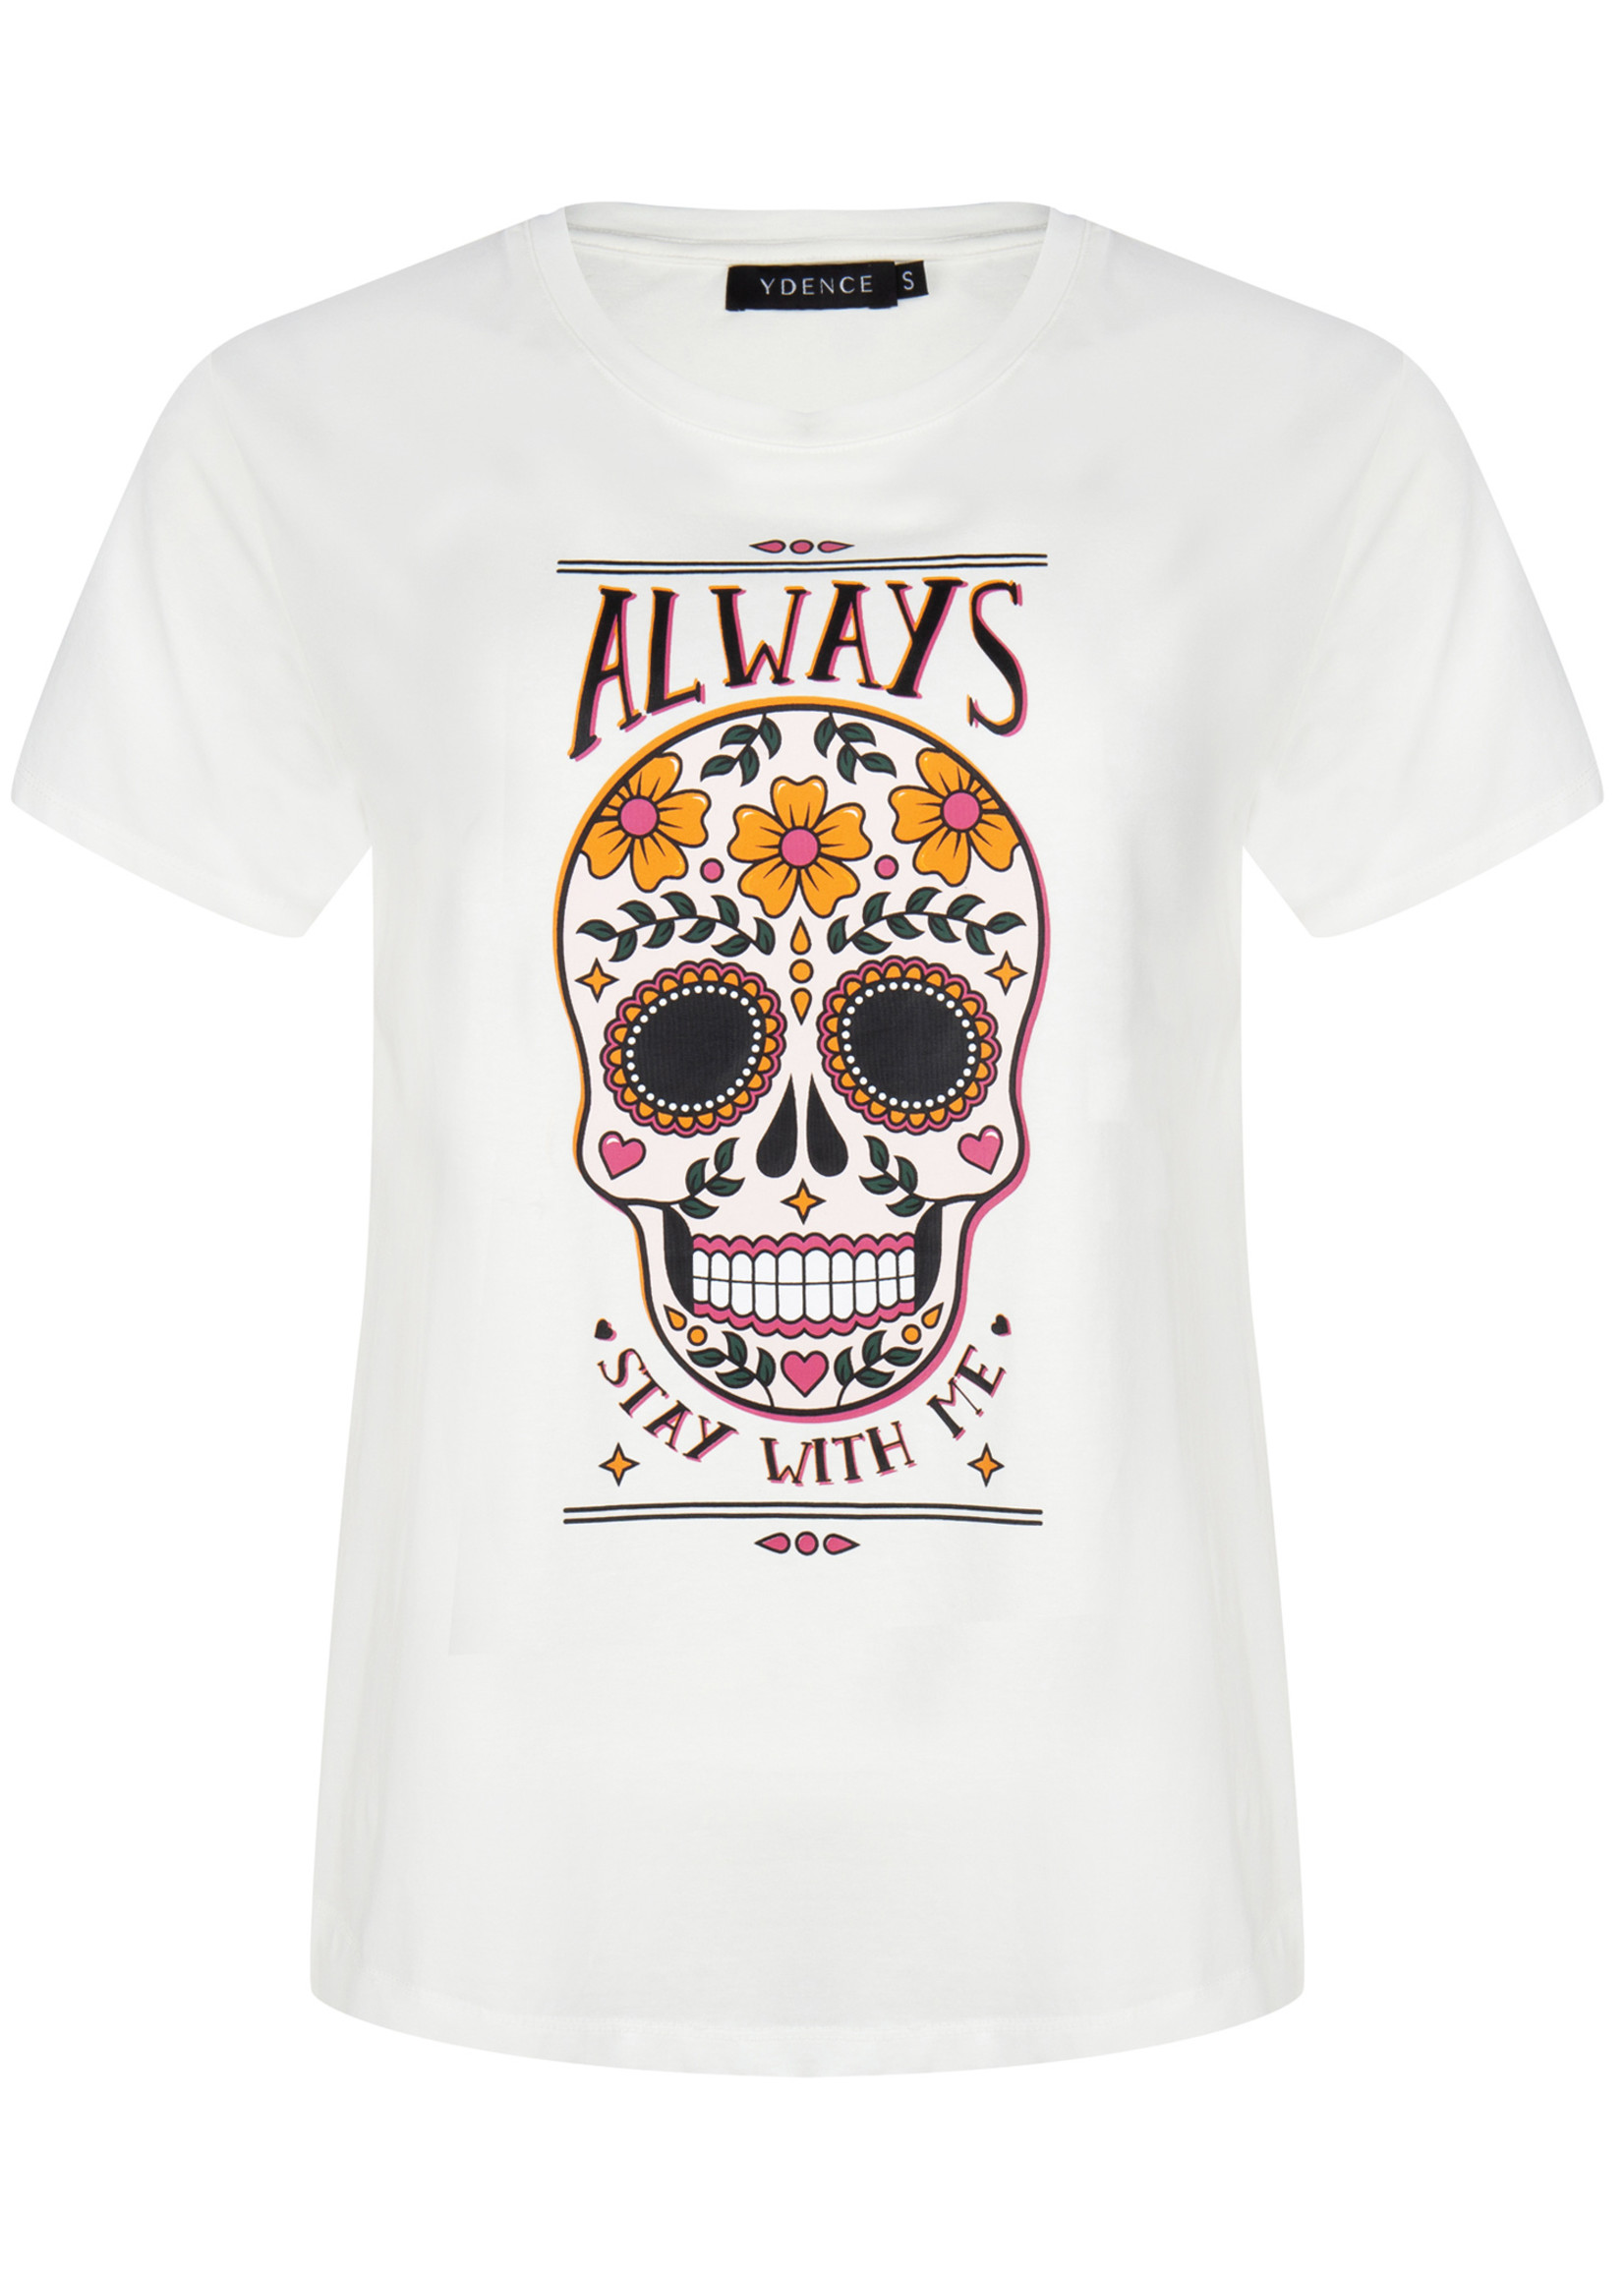 Ydence T-shirt Stay with me